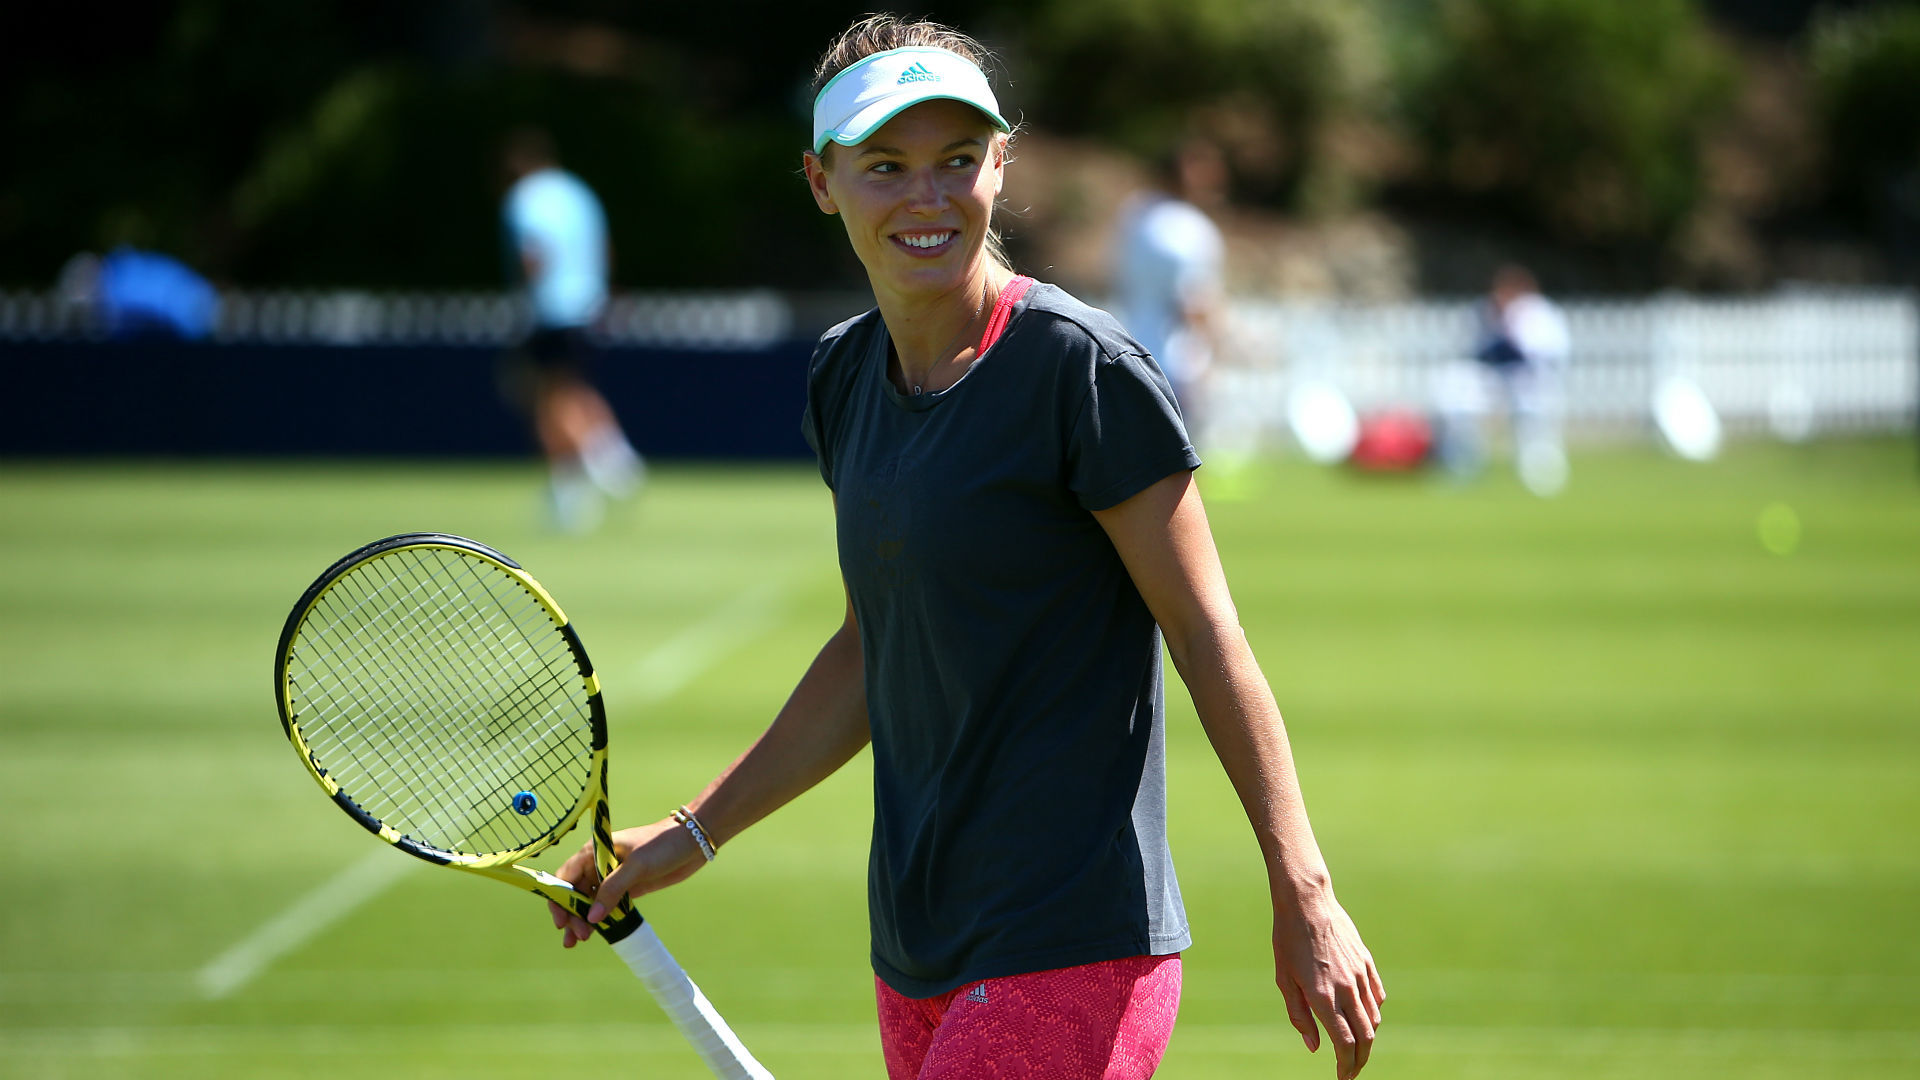 Wozniacki right at home in Eastbourne, Pliskova also makes progress